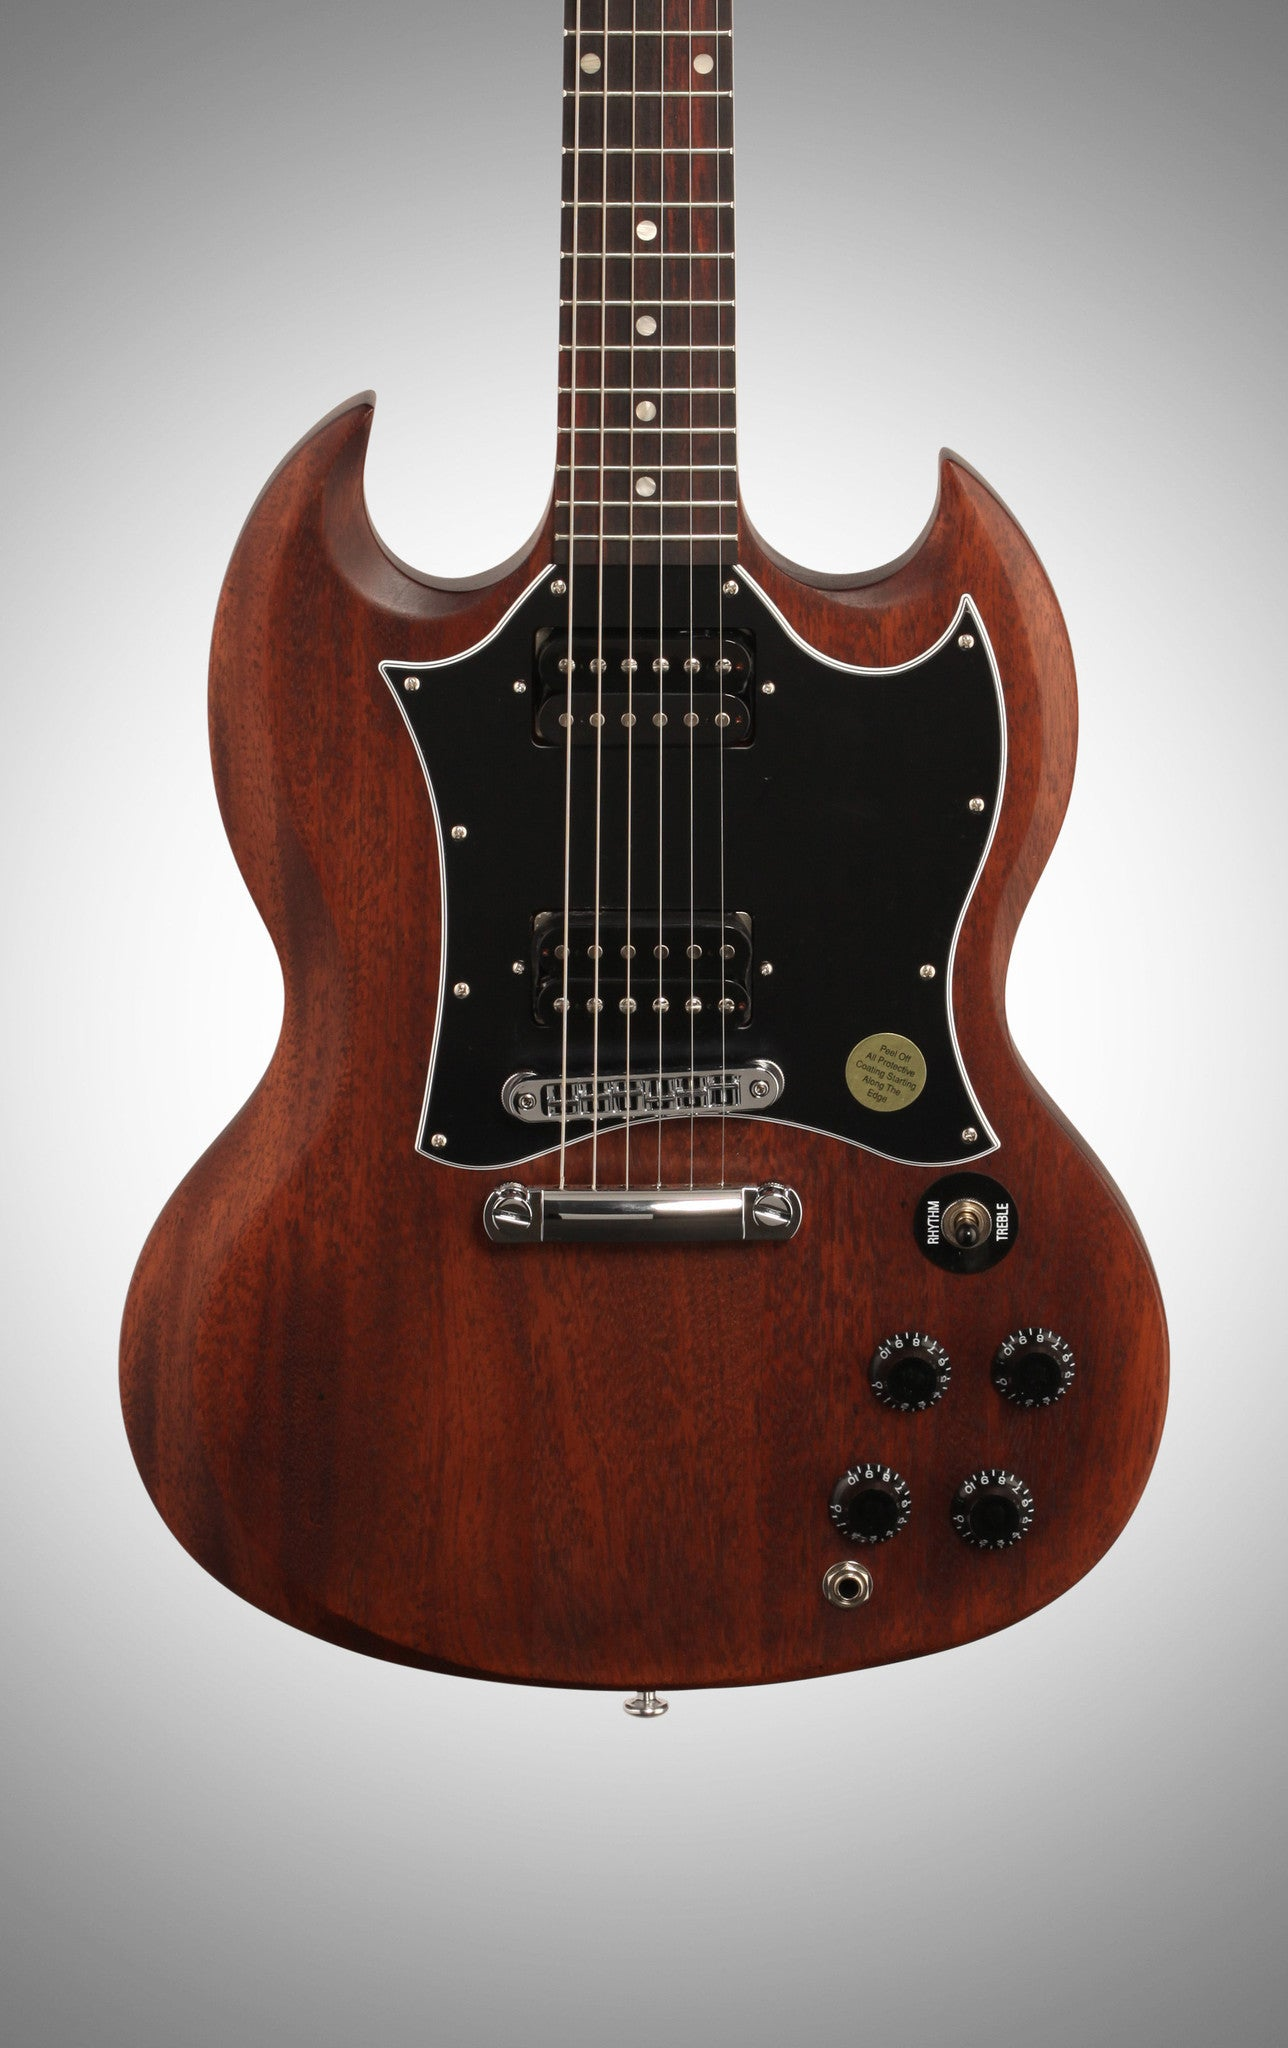 Gibson 2016 SG Faded T Electric Guitar (with Gig Bag), Worn Brown - HIENDGUITAR   Gibson gibson2016